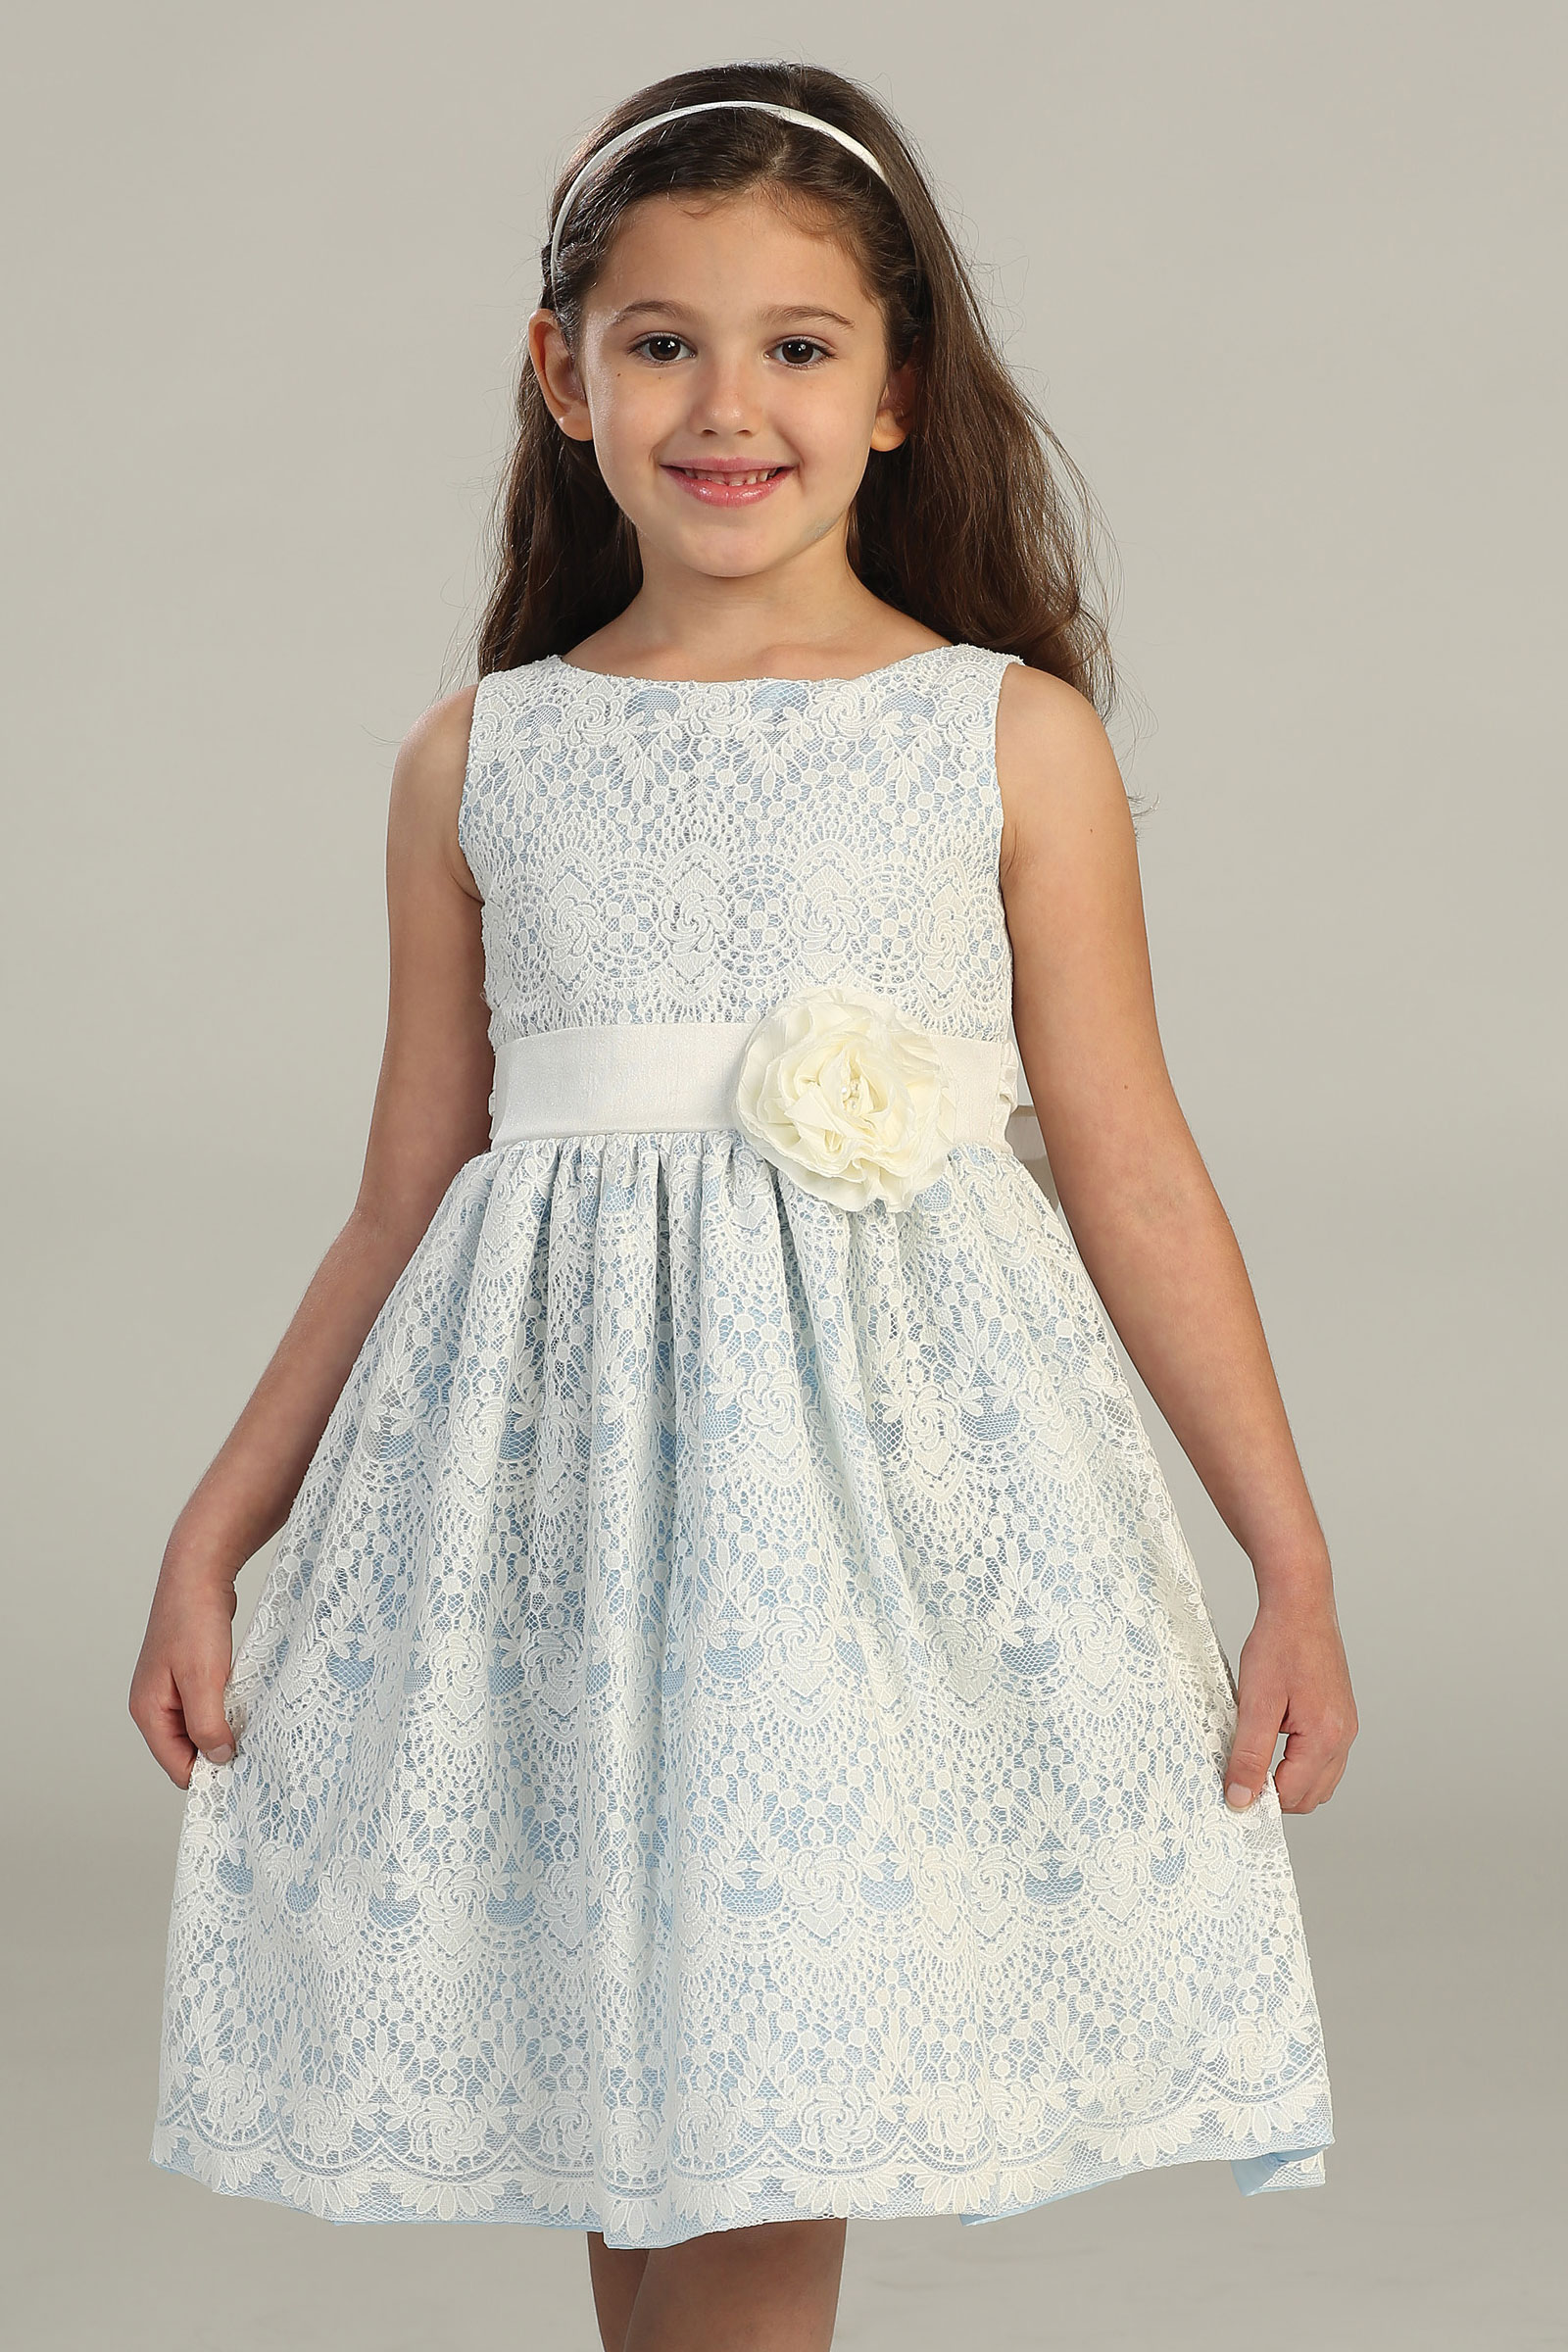 Sk437lb Girls Dress Style 437 Sleeveless Lace Dress Light Blue